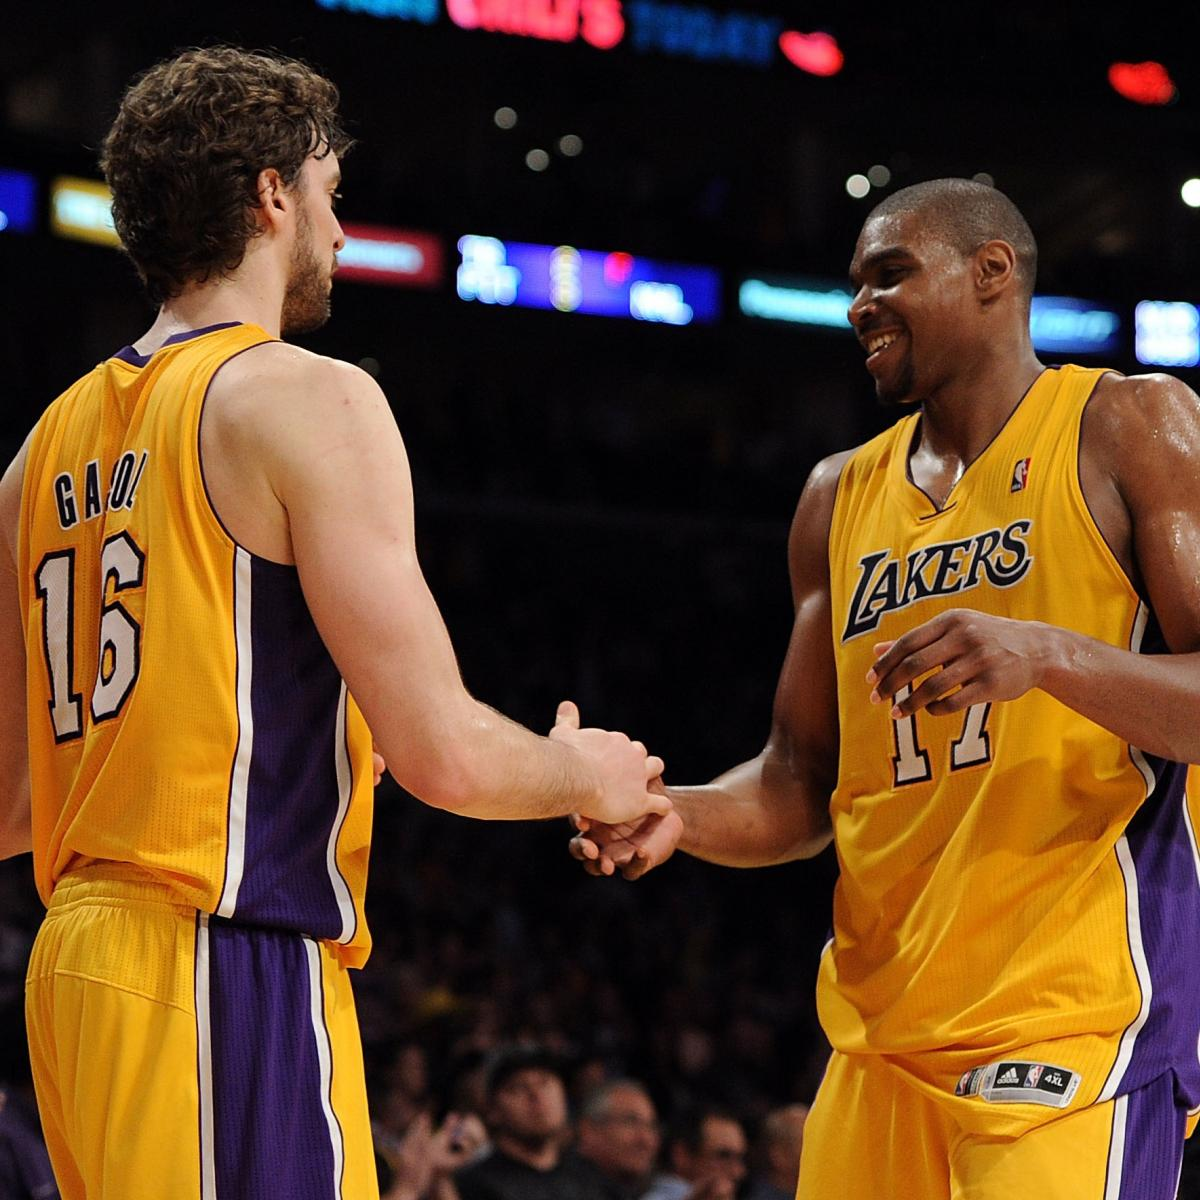 Lakers vs. Heat: Does Bynum and Gasol's Size Really Matter ...